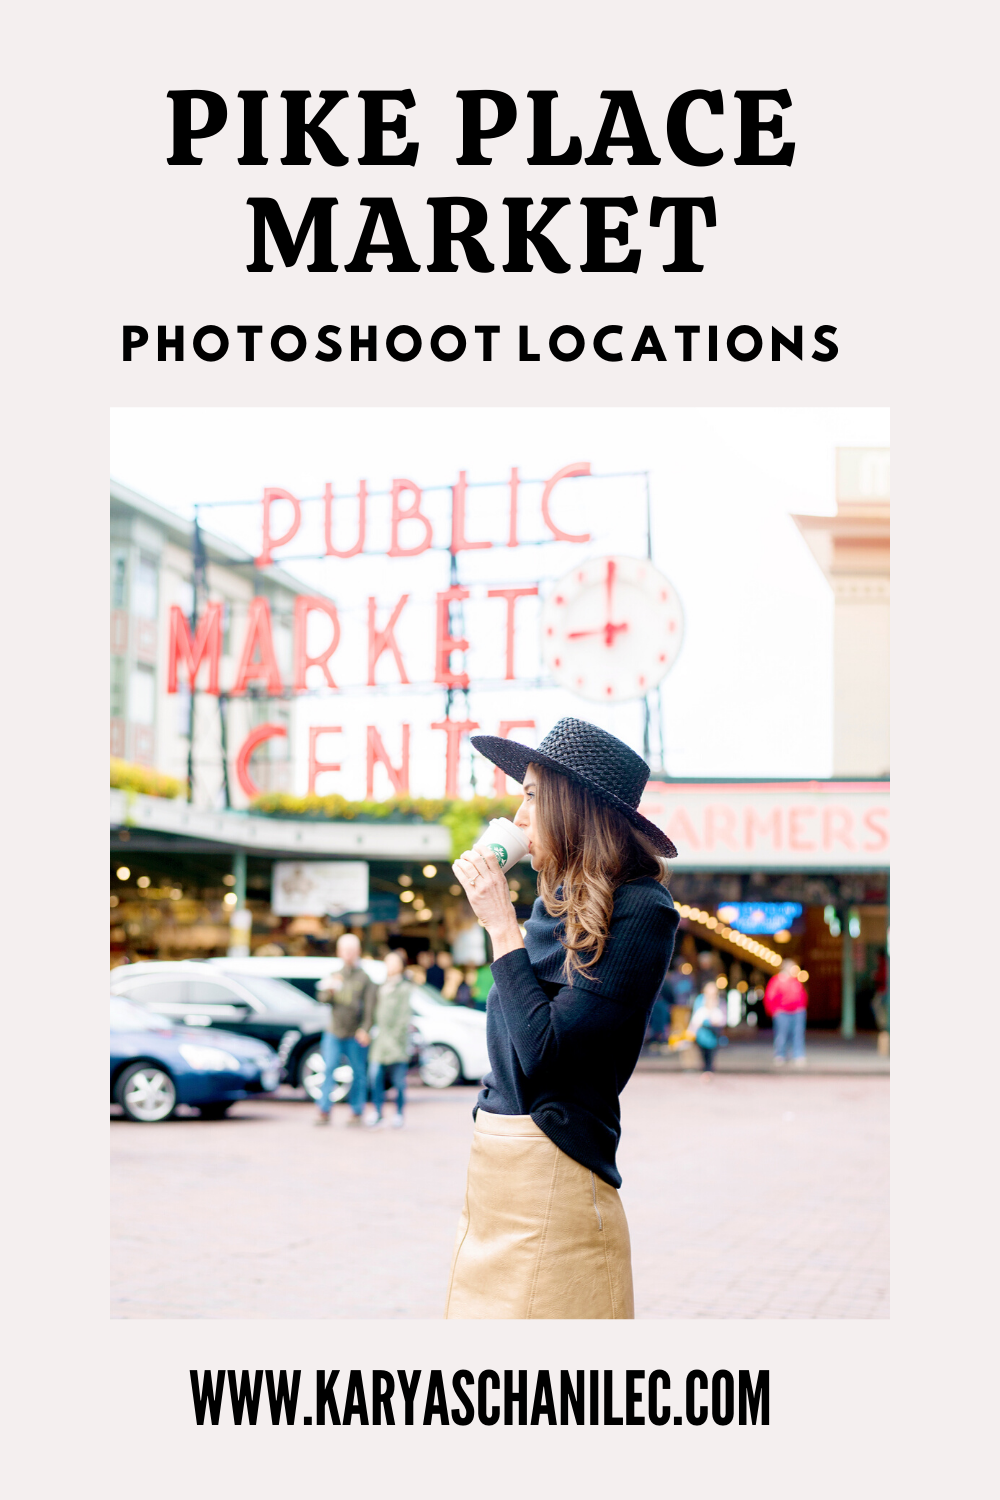 Pike Place Market Photoshoot LOCATIONS